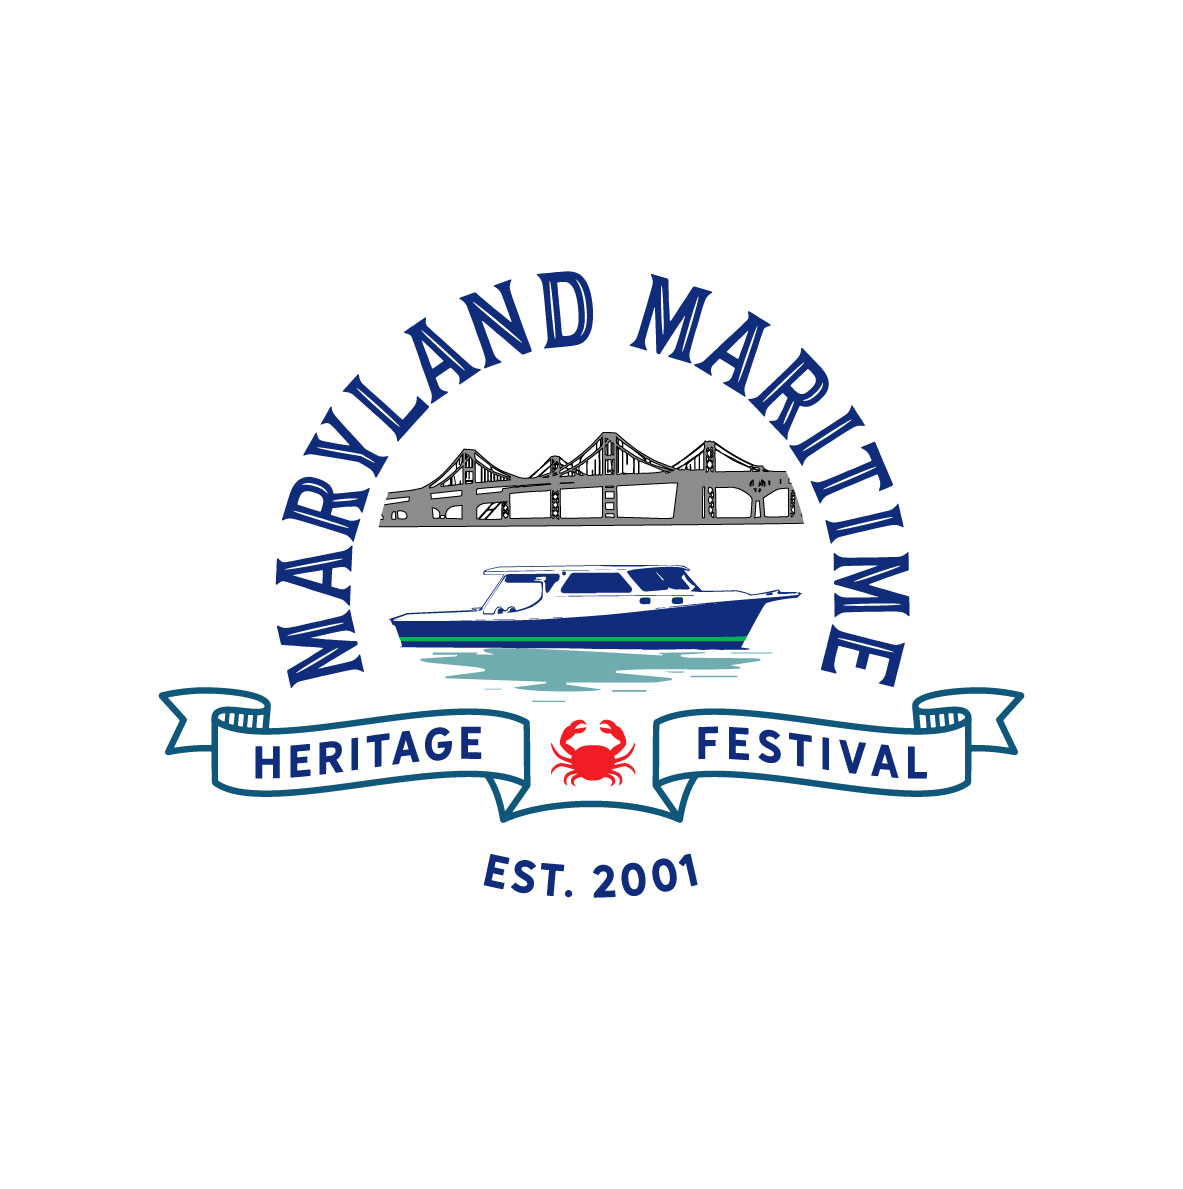 Maryland Maritime Heritage Club